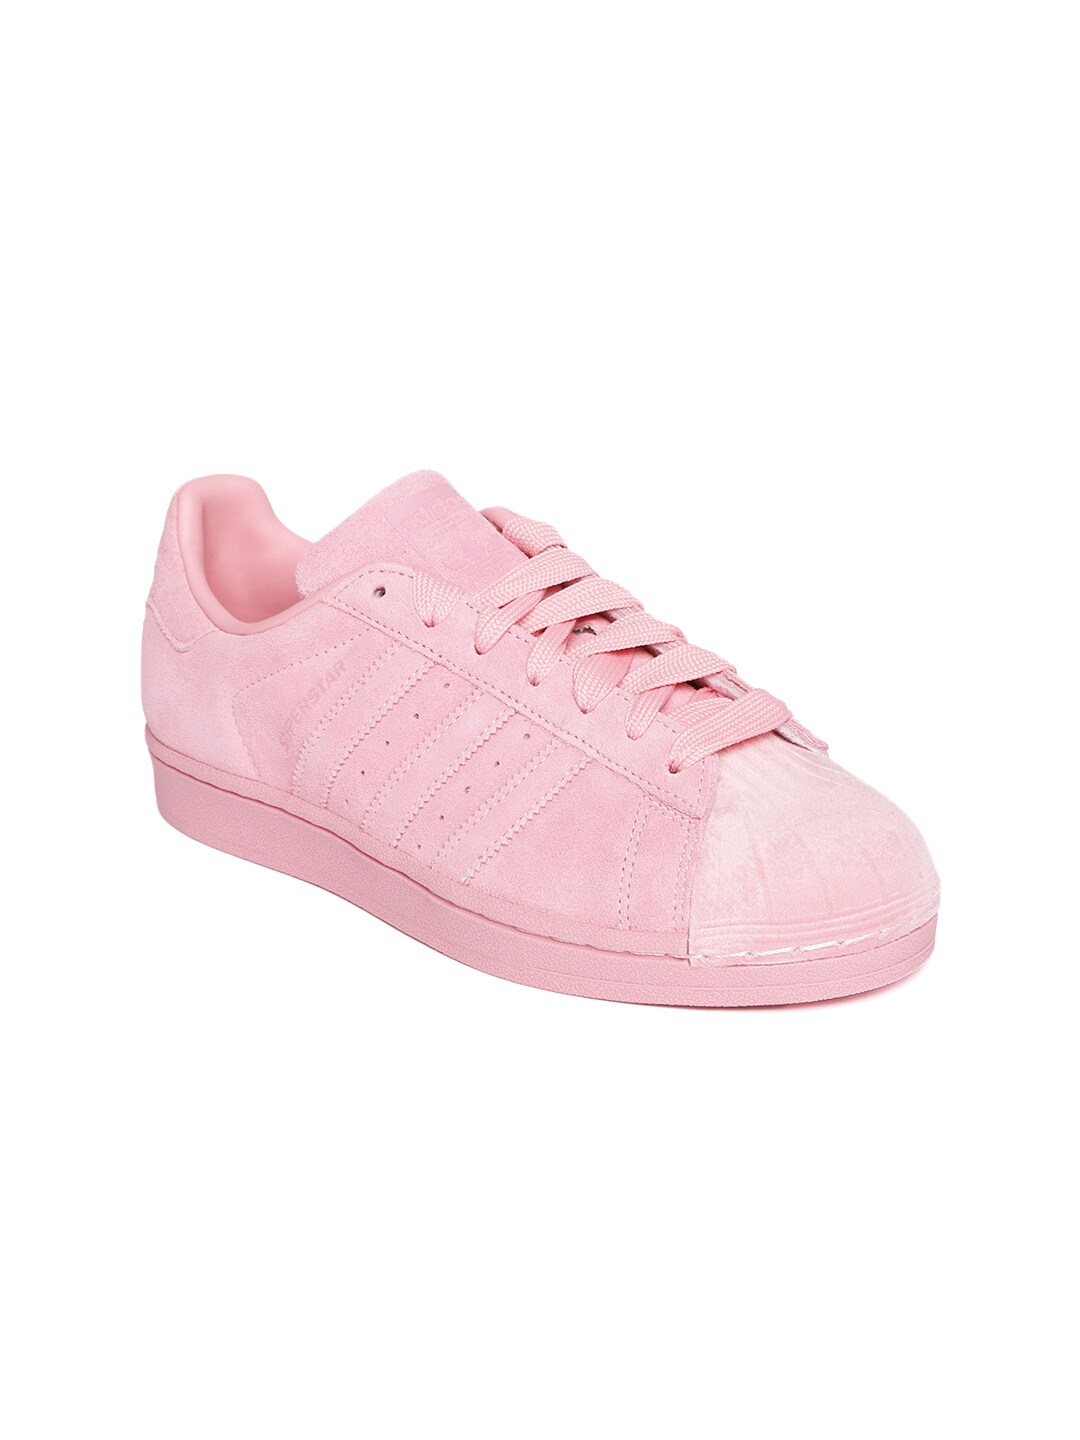 Adidas Superstar Shoes - Buy Adidas Superstar Shoes Online - Myntra 9bdc84ddc83b